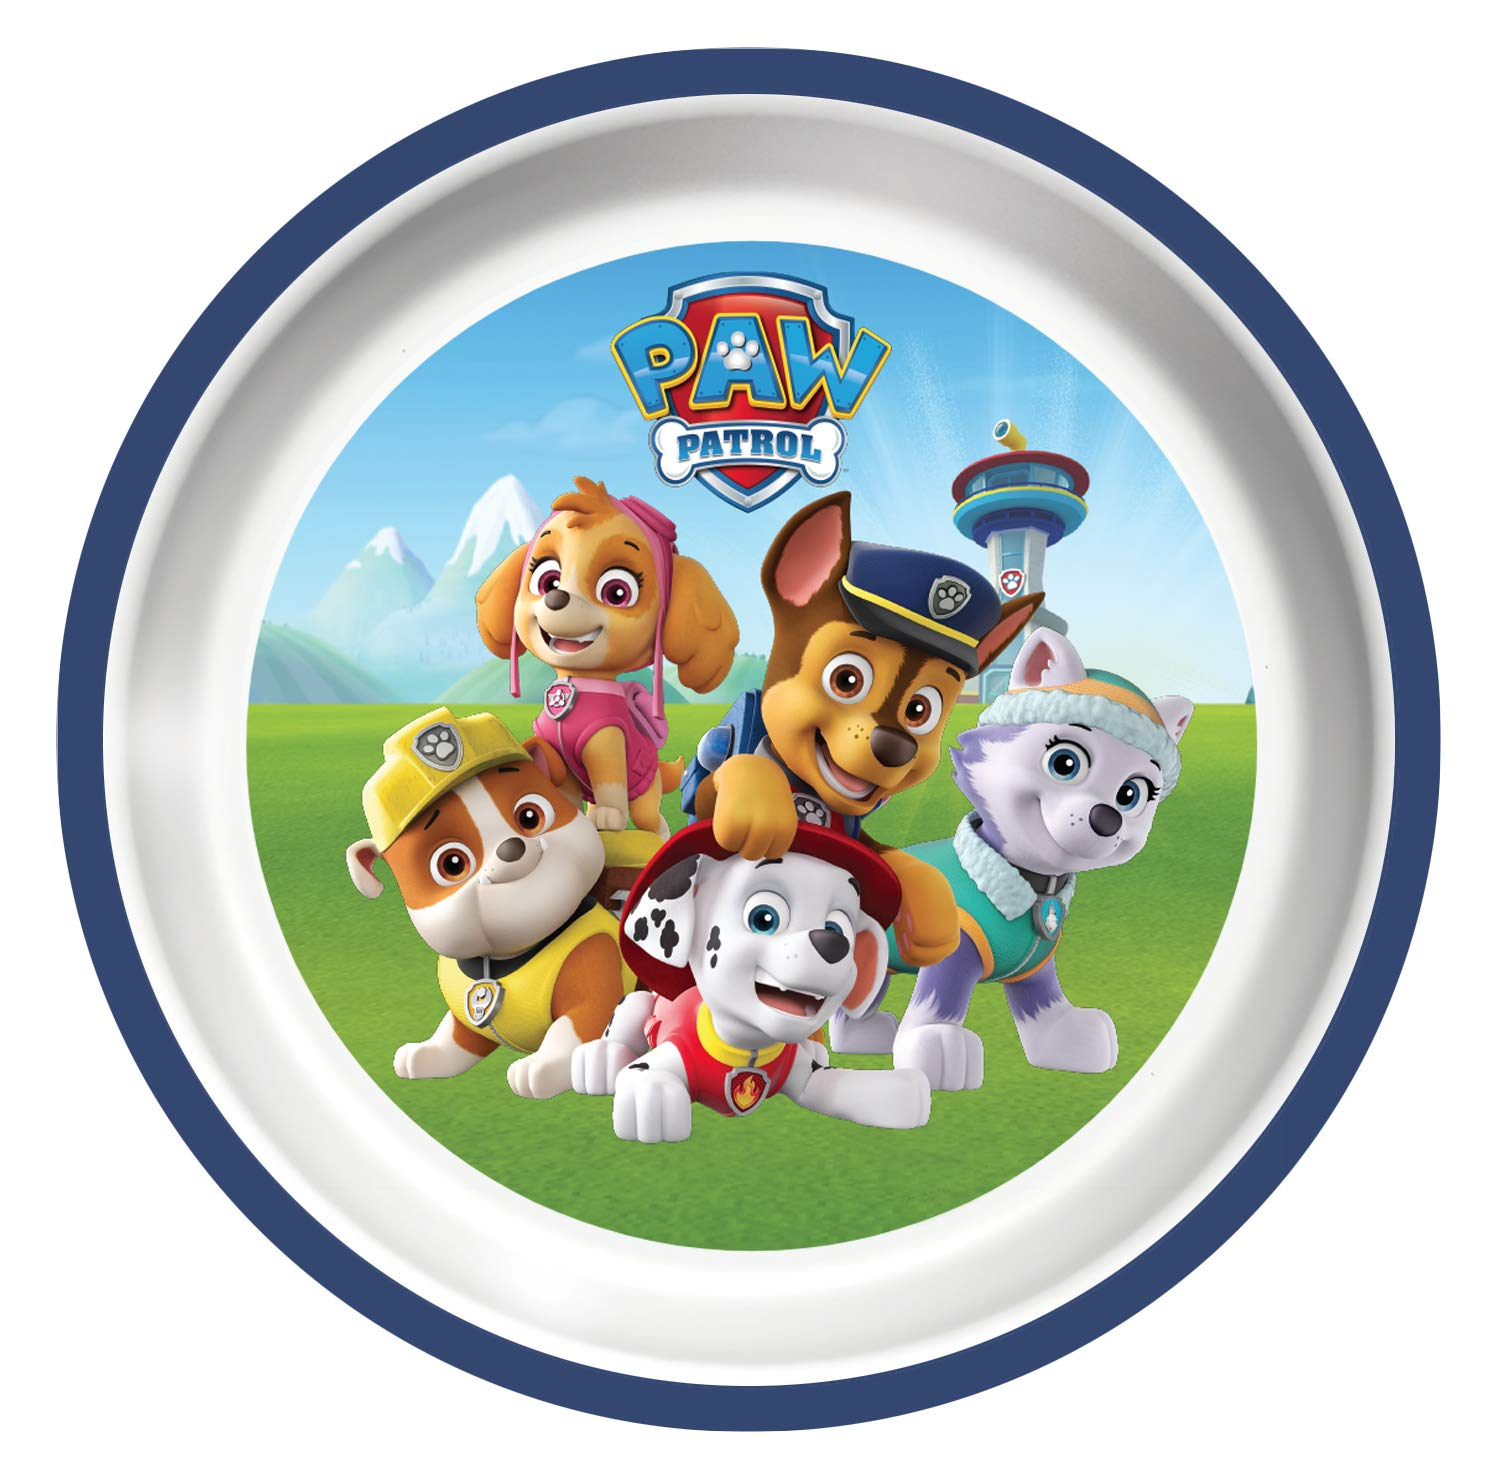 Playtex Mealtime Selling Paw Patrol Plates for 3 Pack Boys - of Fort Worth Mall